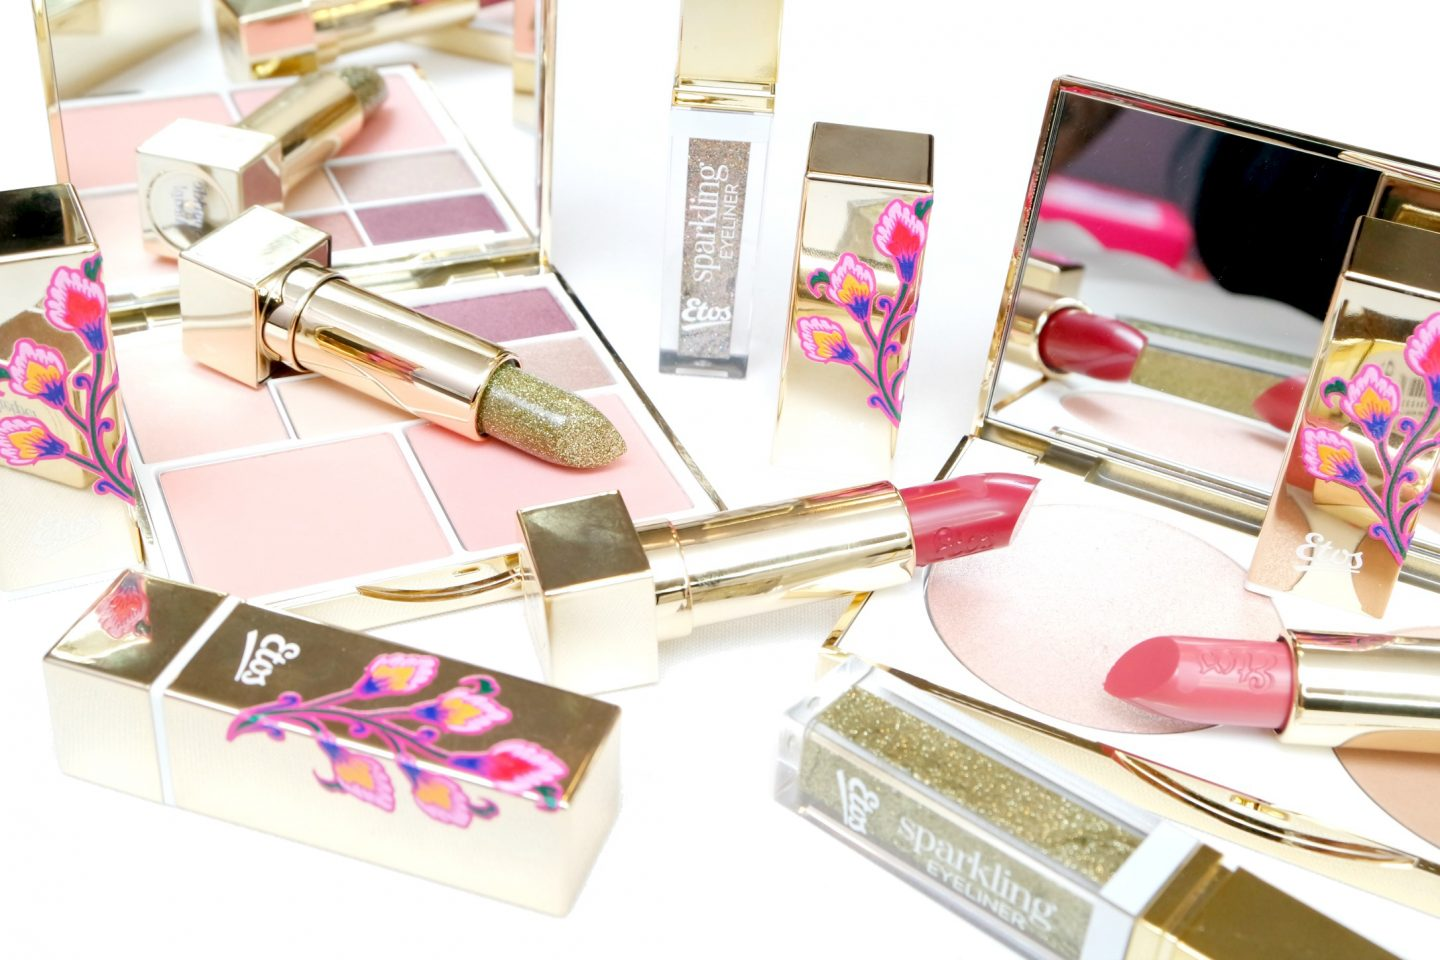 Etos Make-up Holiday 2018 Collection